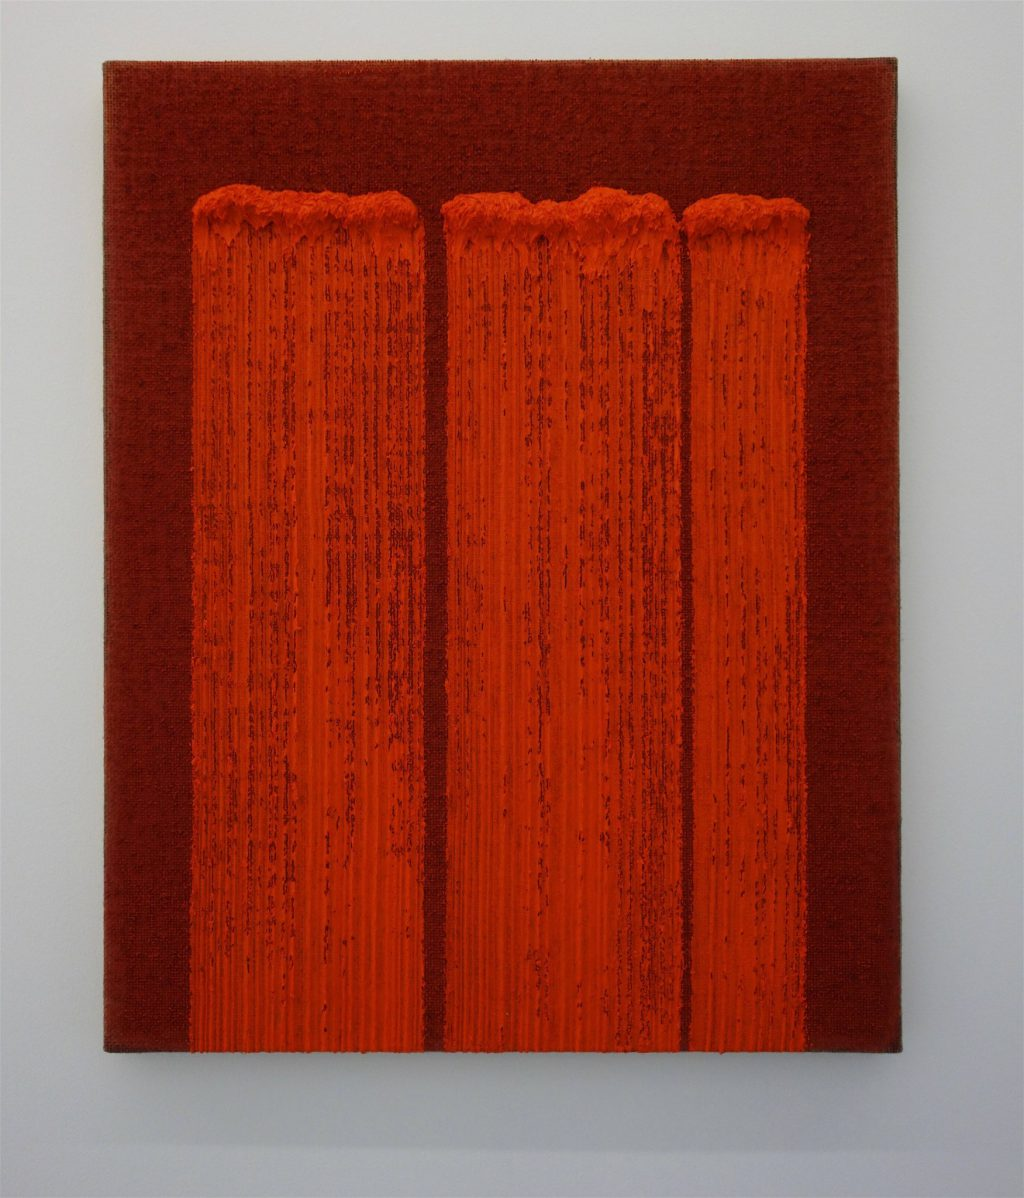 HA Chong-hyun 'Conjunction 18-07' 2018, Oil on hemp, 91 x 73 cm